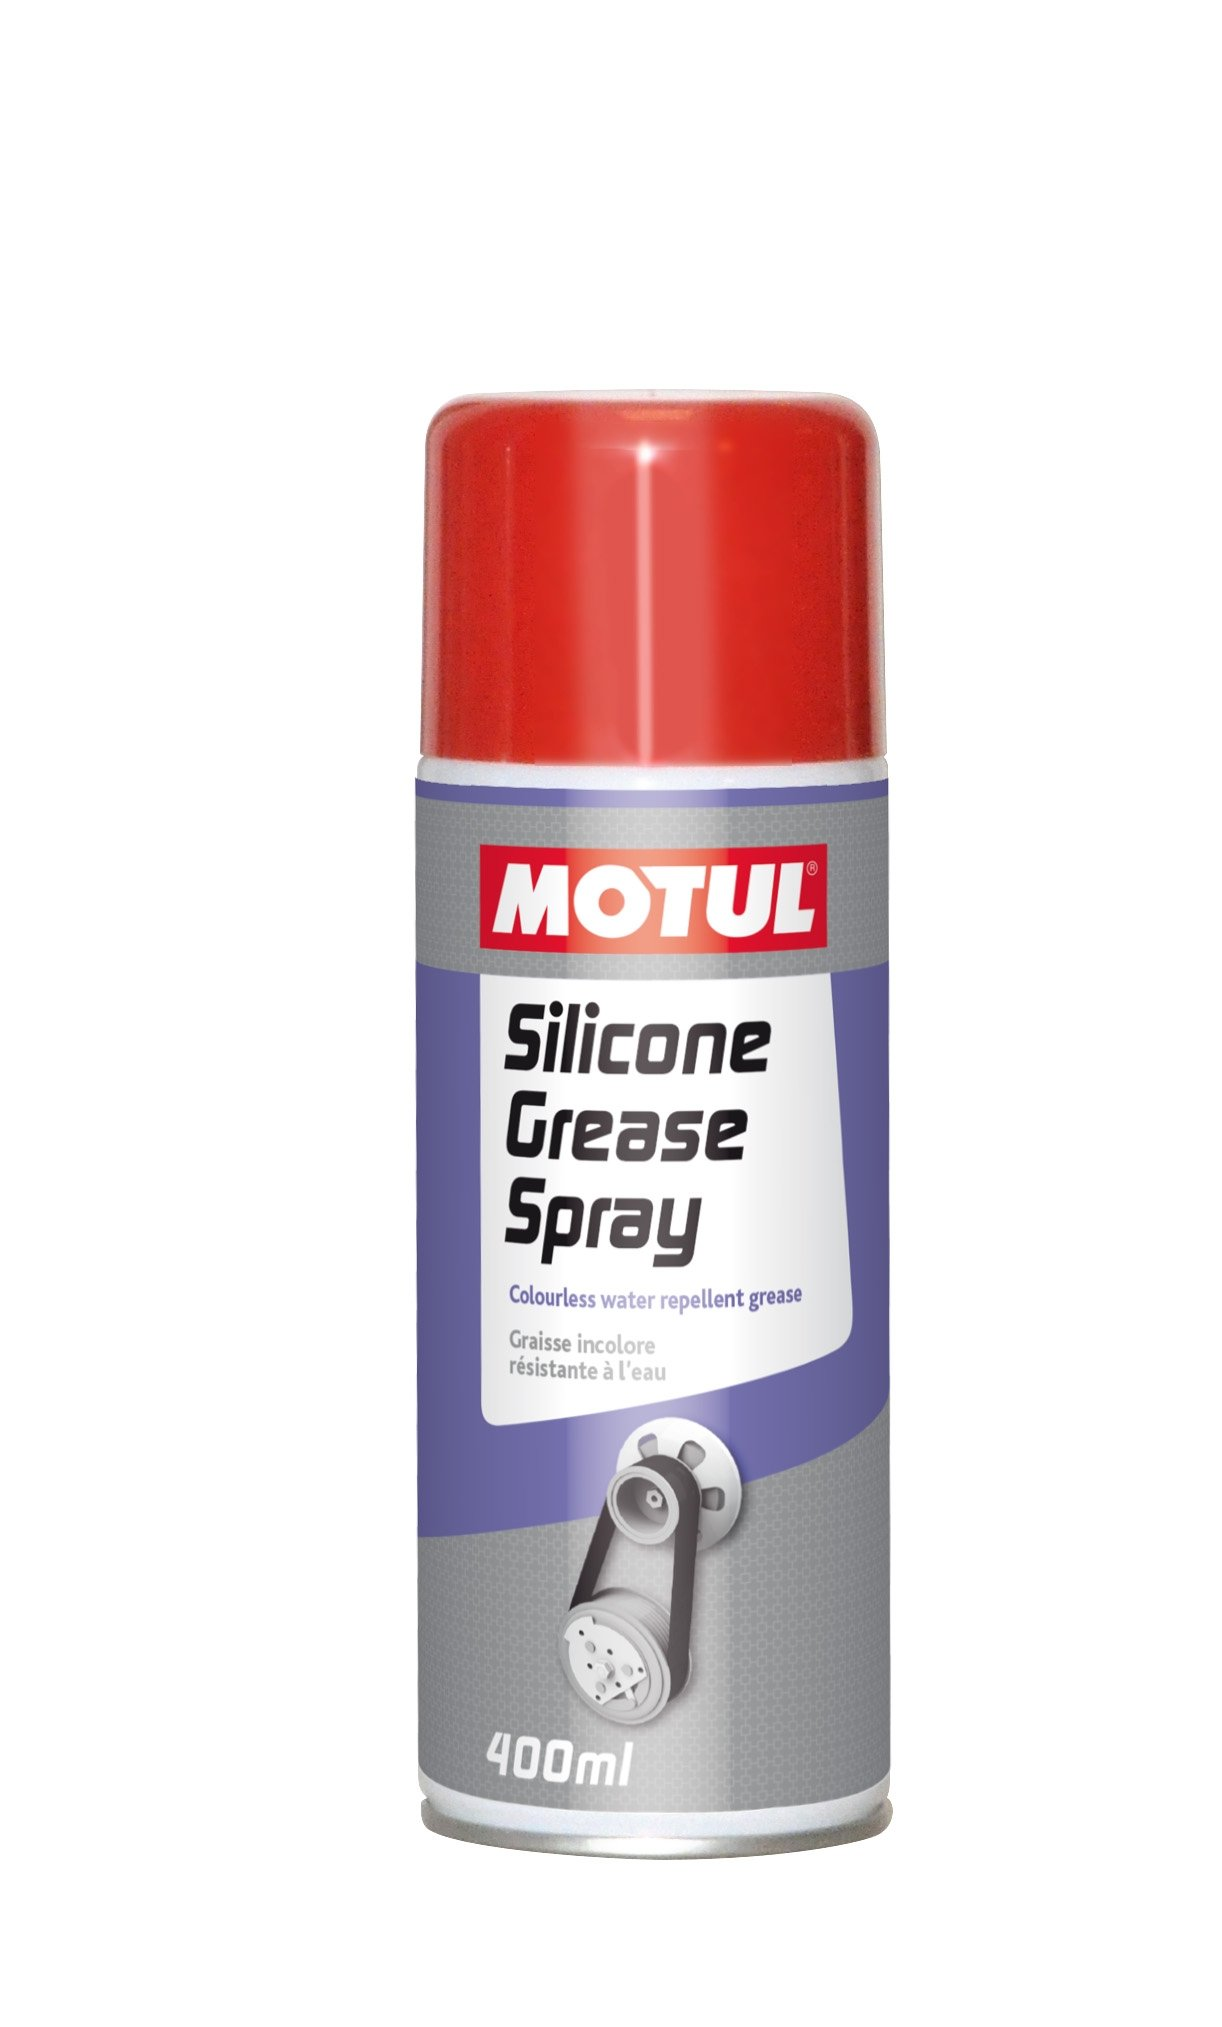 Motul Silicone Grease Spray (400ml)-400 мл 400 мл